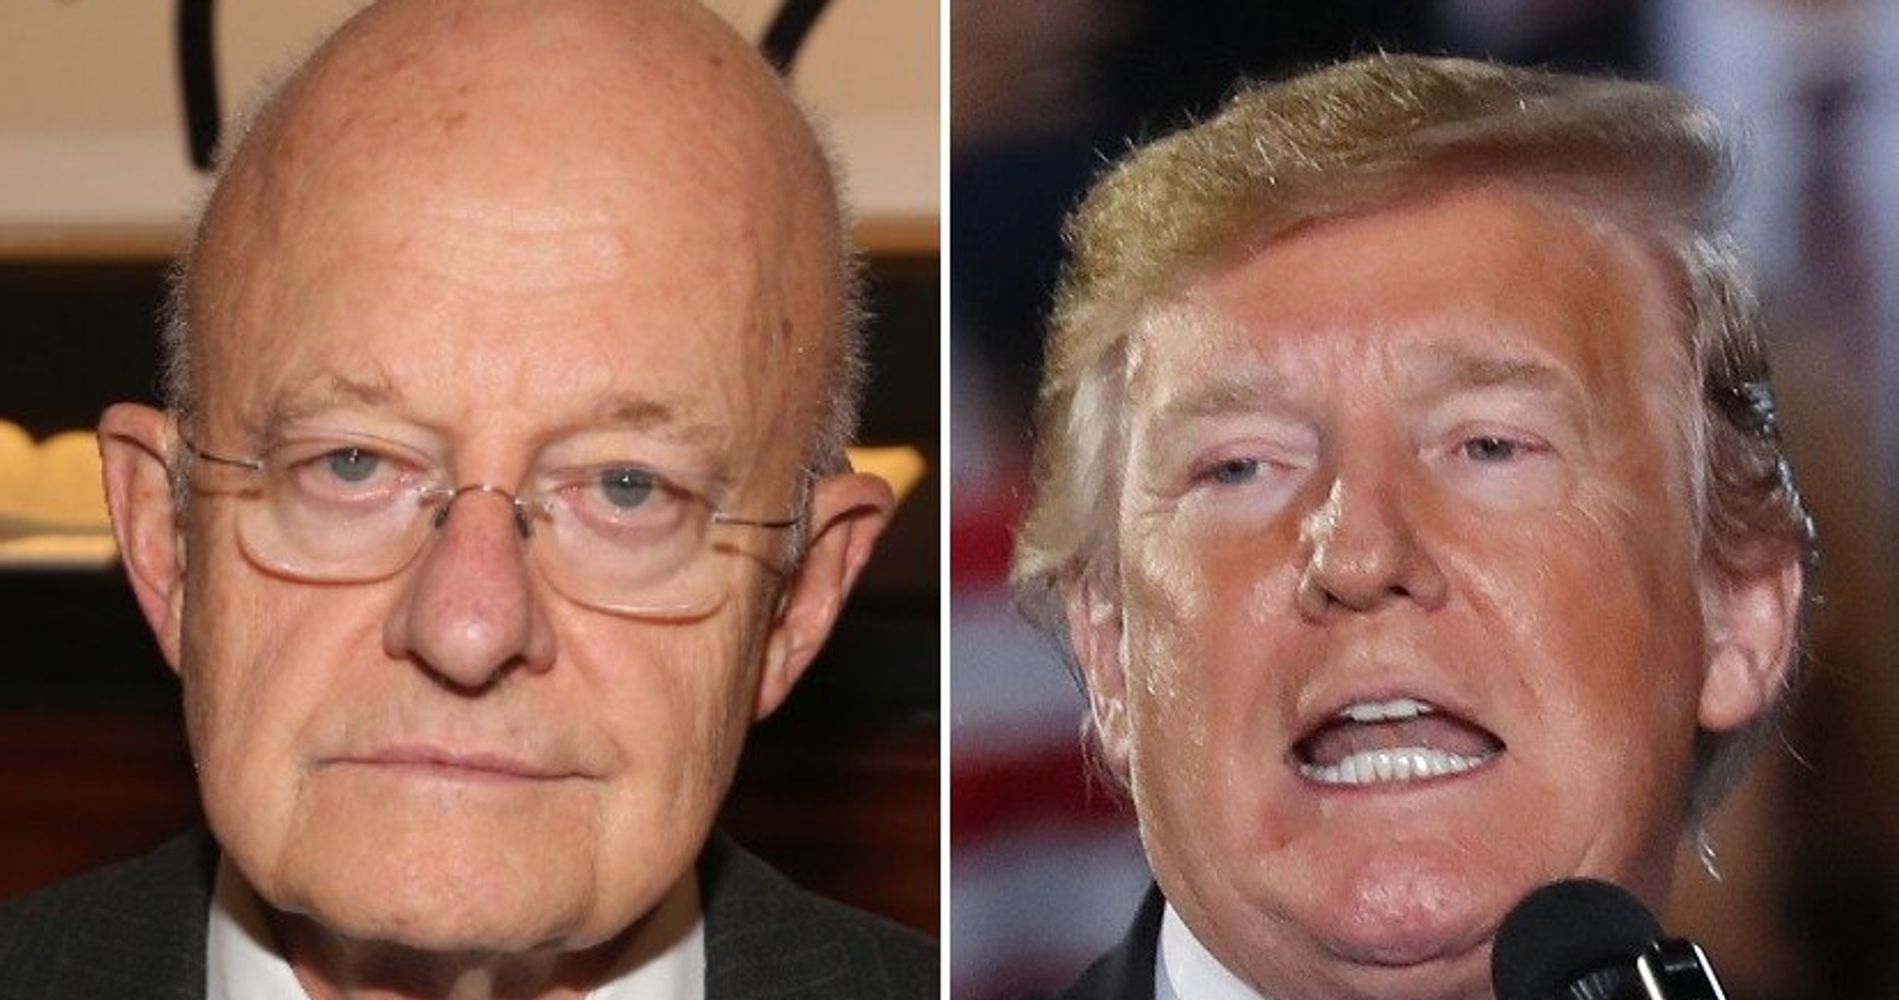 James Clapper: Trump May Be A Russian Asset 'Whether Witting Or Unwitting'